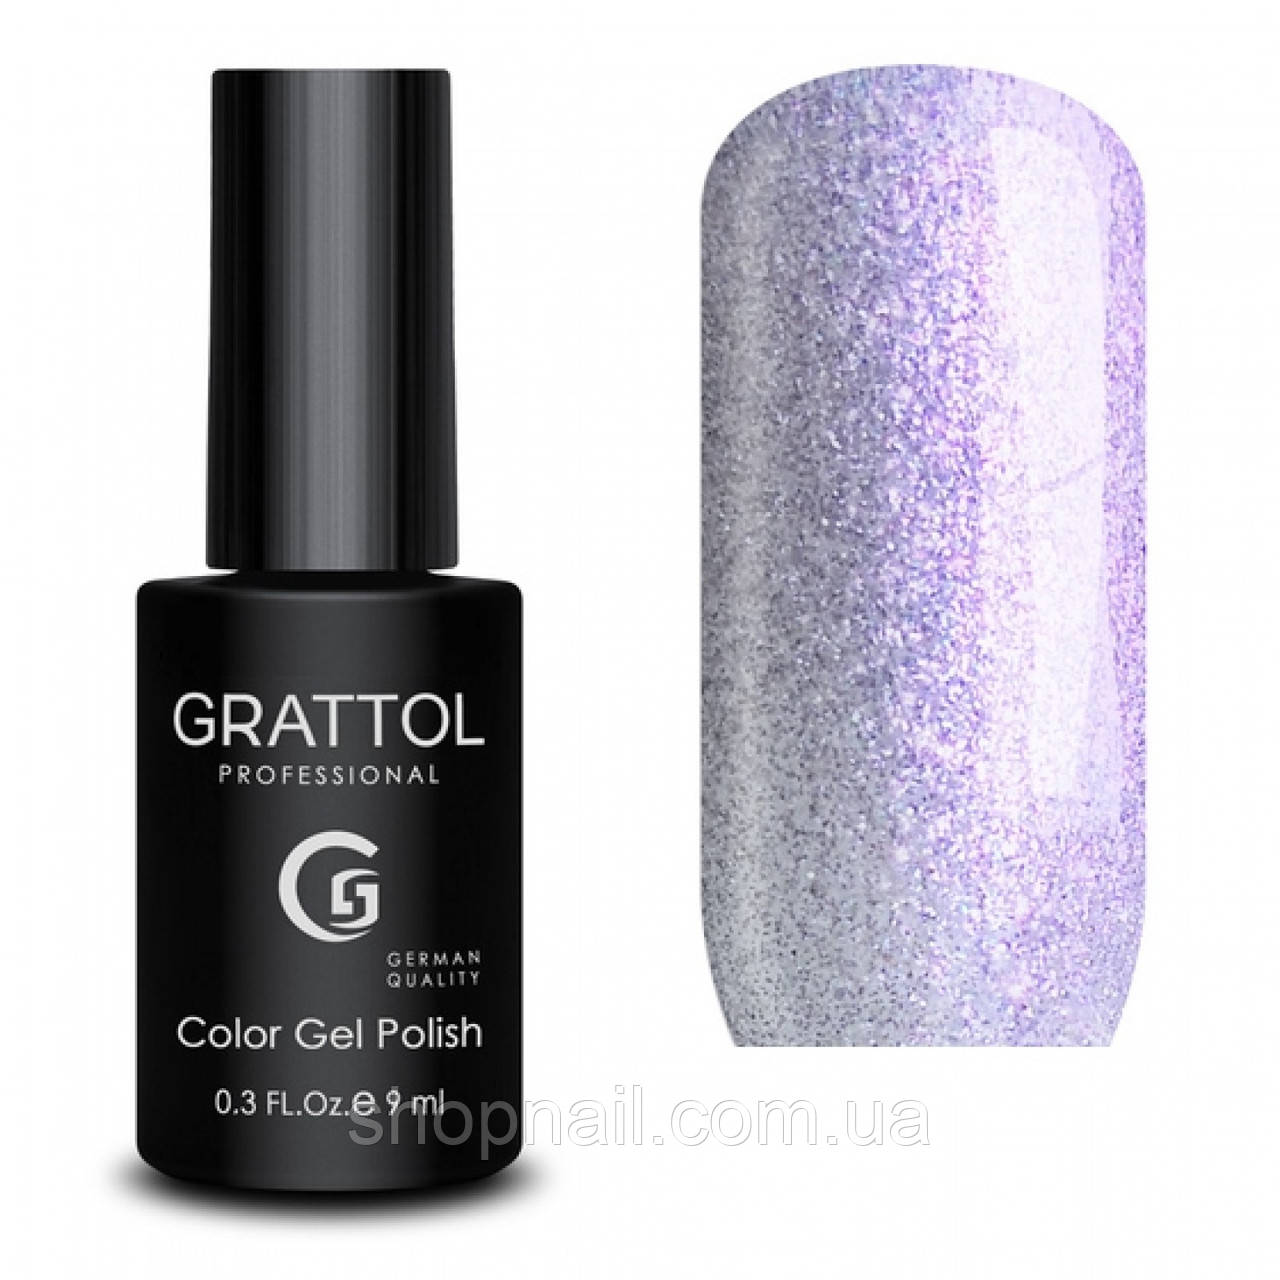 01 Grattol Gel polish Quartz